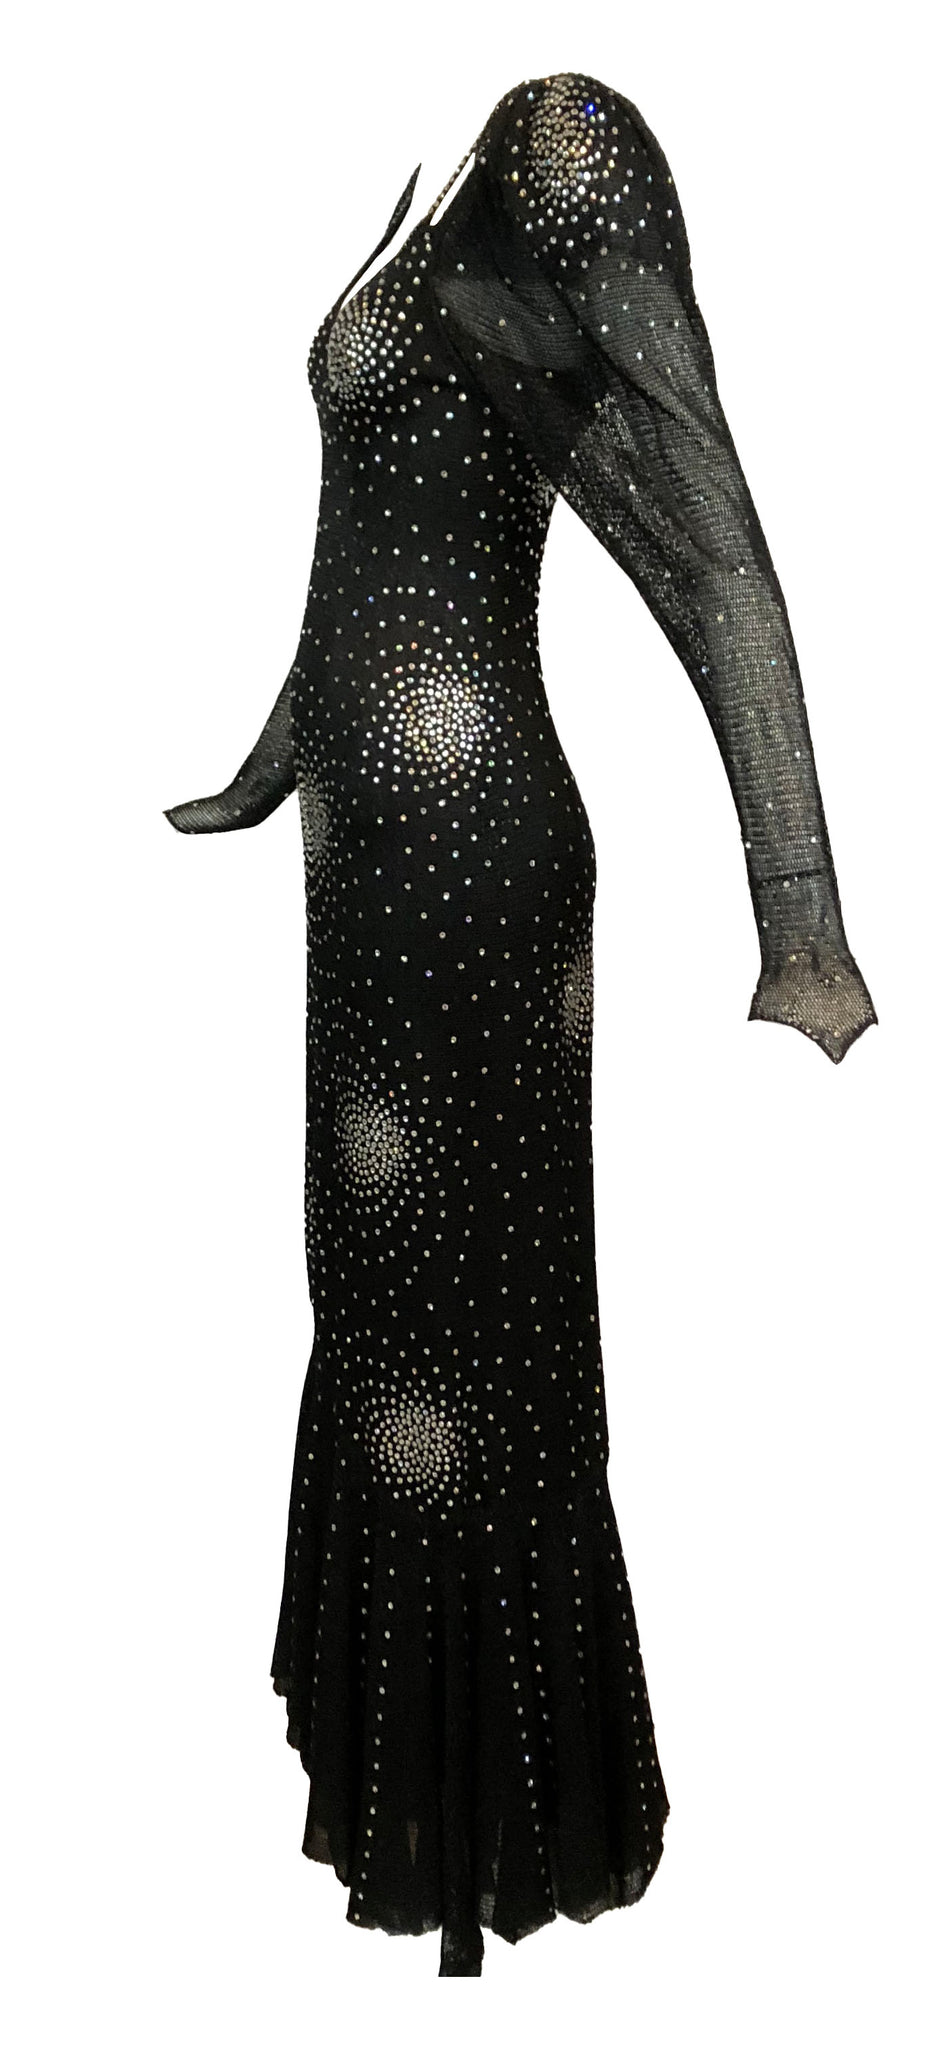 Heidi Beck Contemporary  Black Crochet  Gown Encrusted with Rhinestones 2 of 6